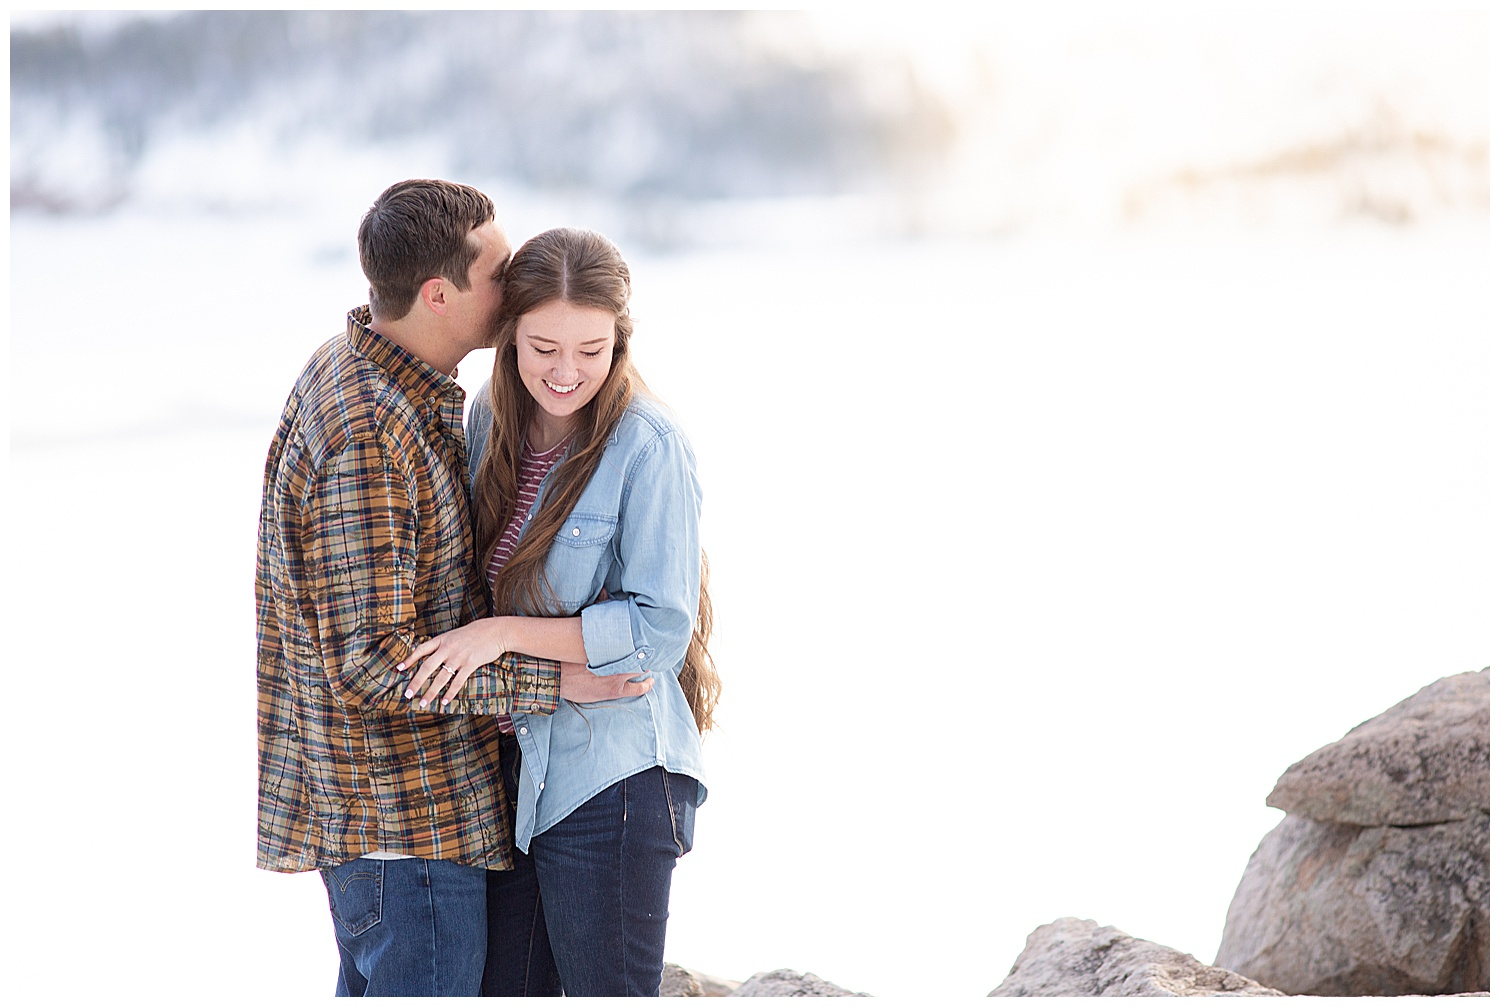 Winter-Breckenridge-Colorado-Engagement-Session_0001.jpg